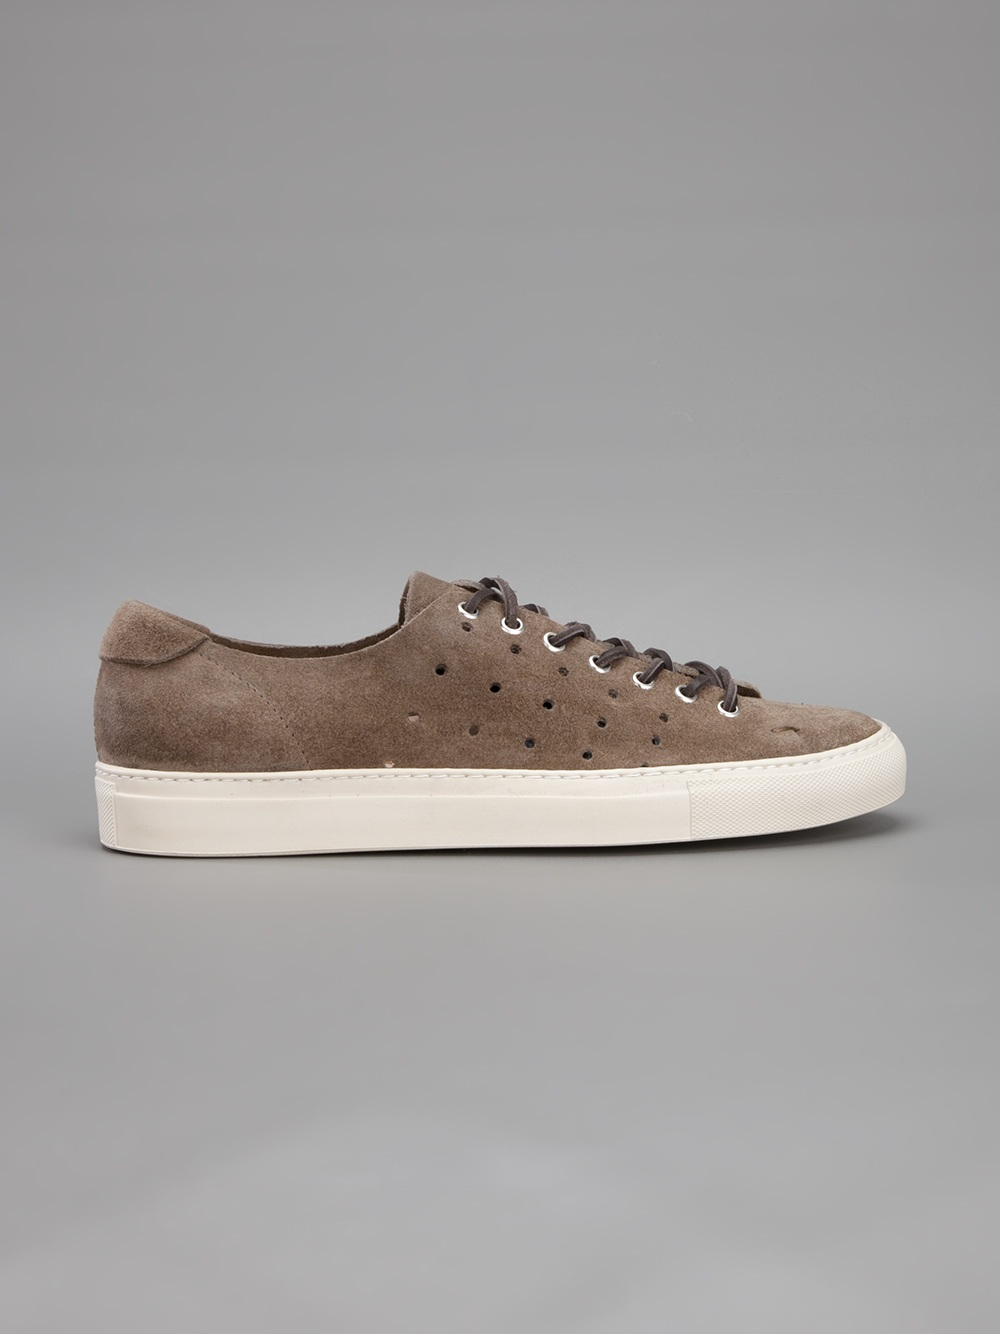 Buttero Suede Trainer in Taupe (Brown) for Men